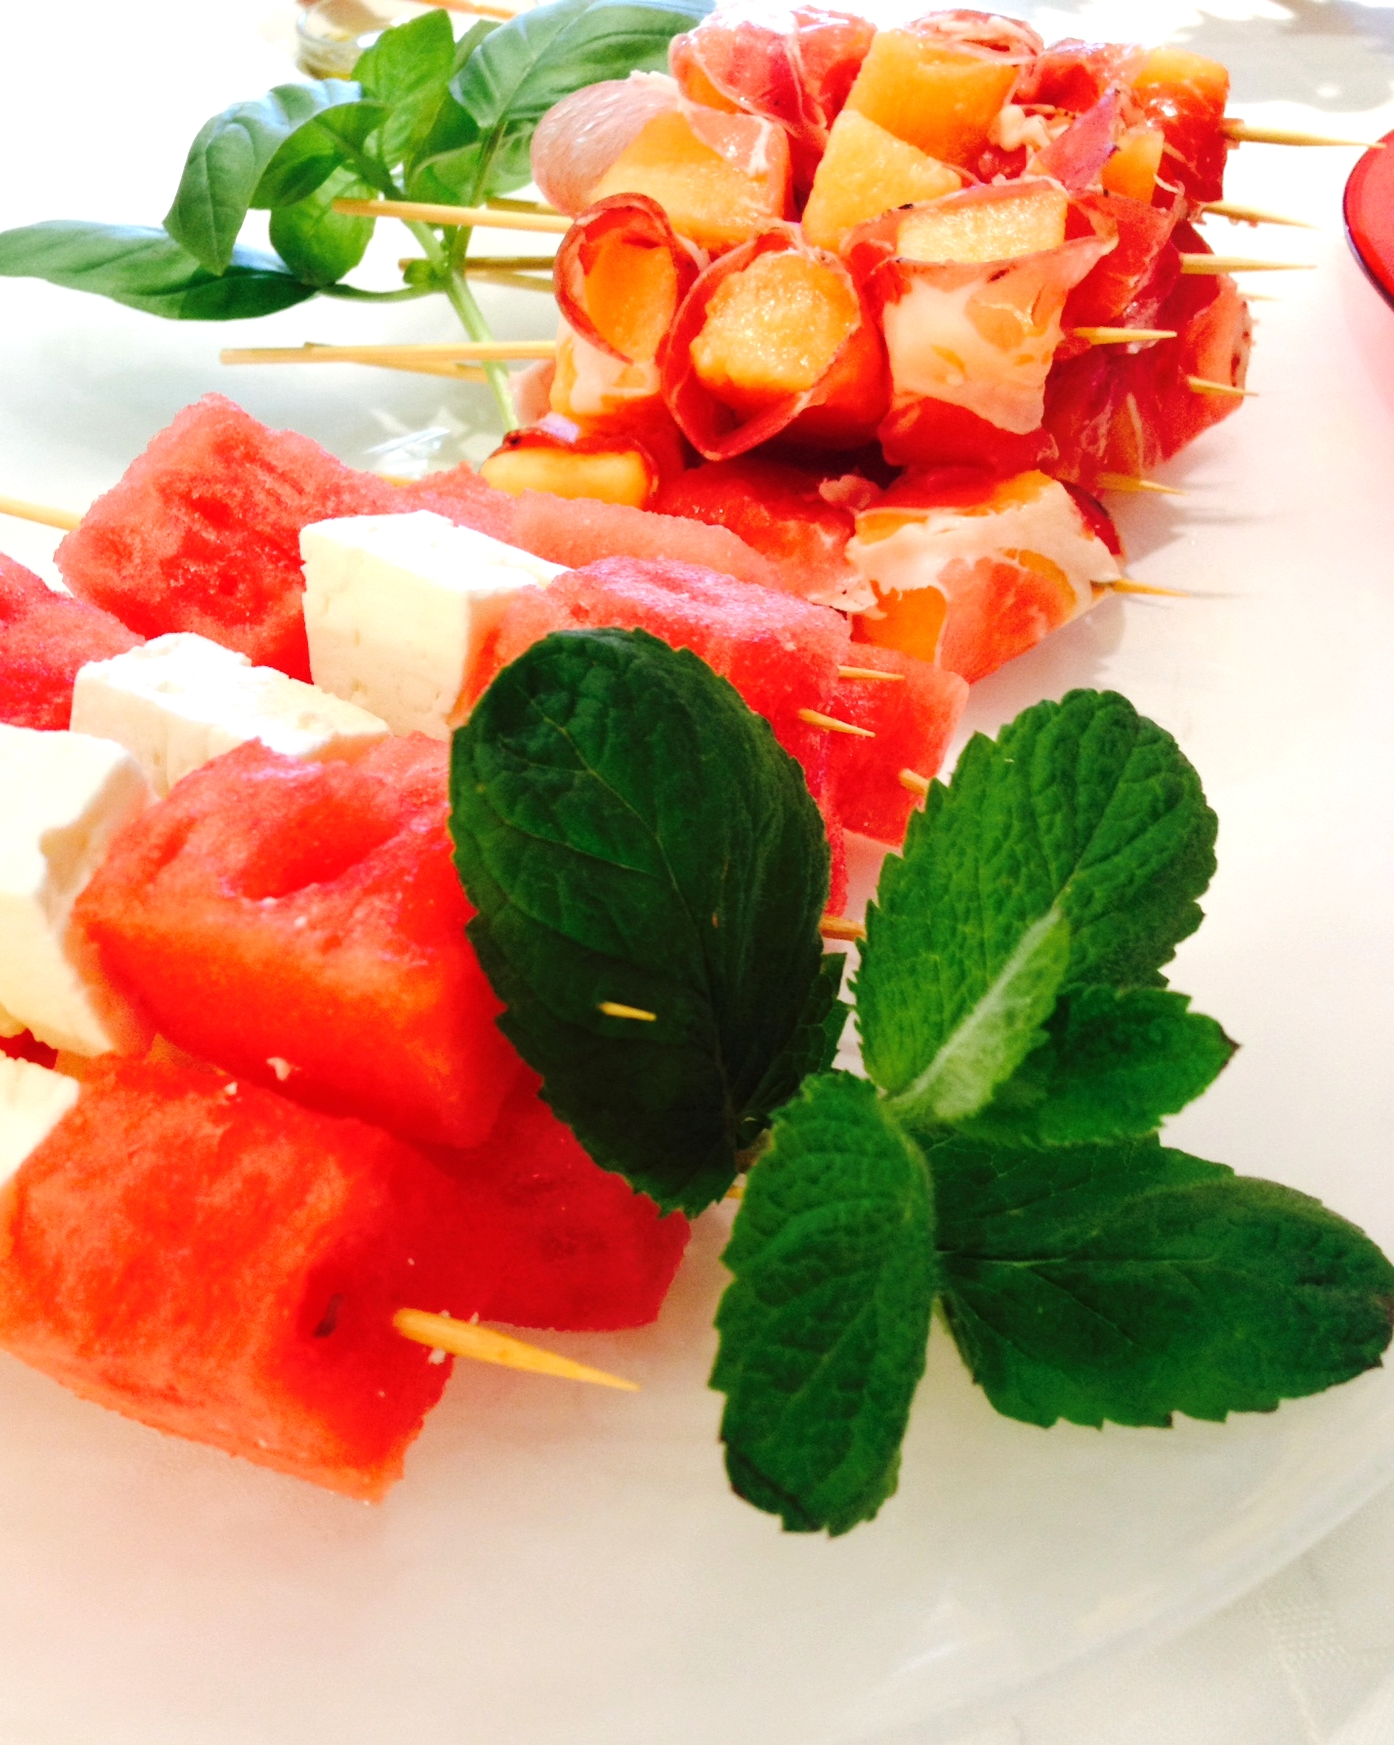 (front) Watermelon and Feta Cheese Skewers with Mint (back) C antelope and Prosciutto Skewers with Basil